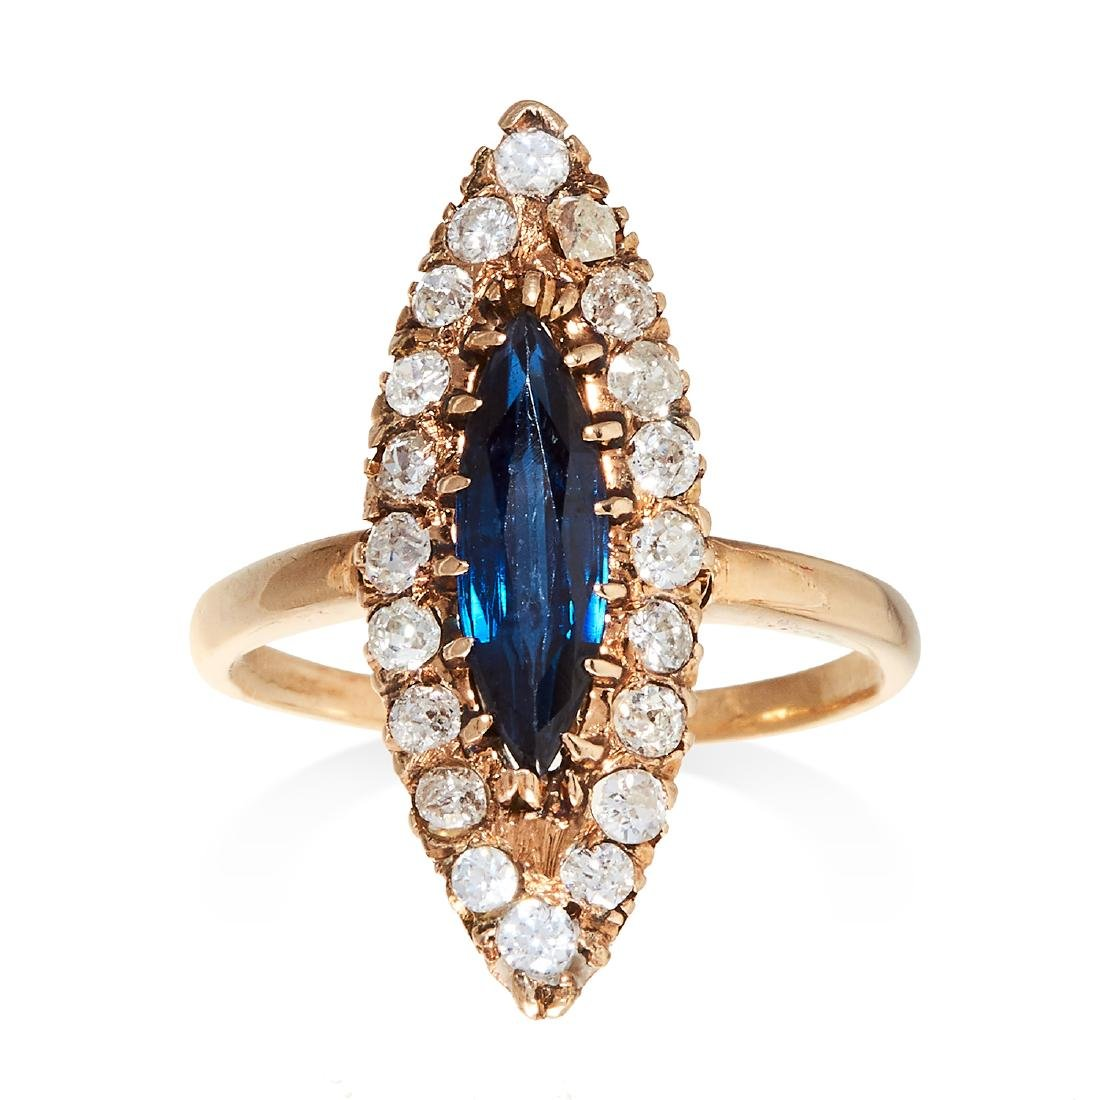 A SAPPHIRE AND DIAMOND DRESS RING, VICTORIAN in yellow